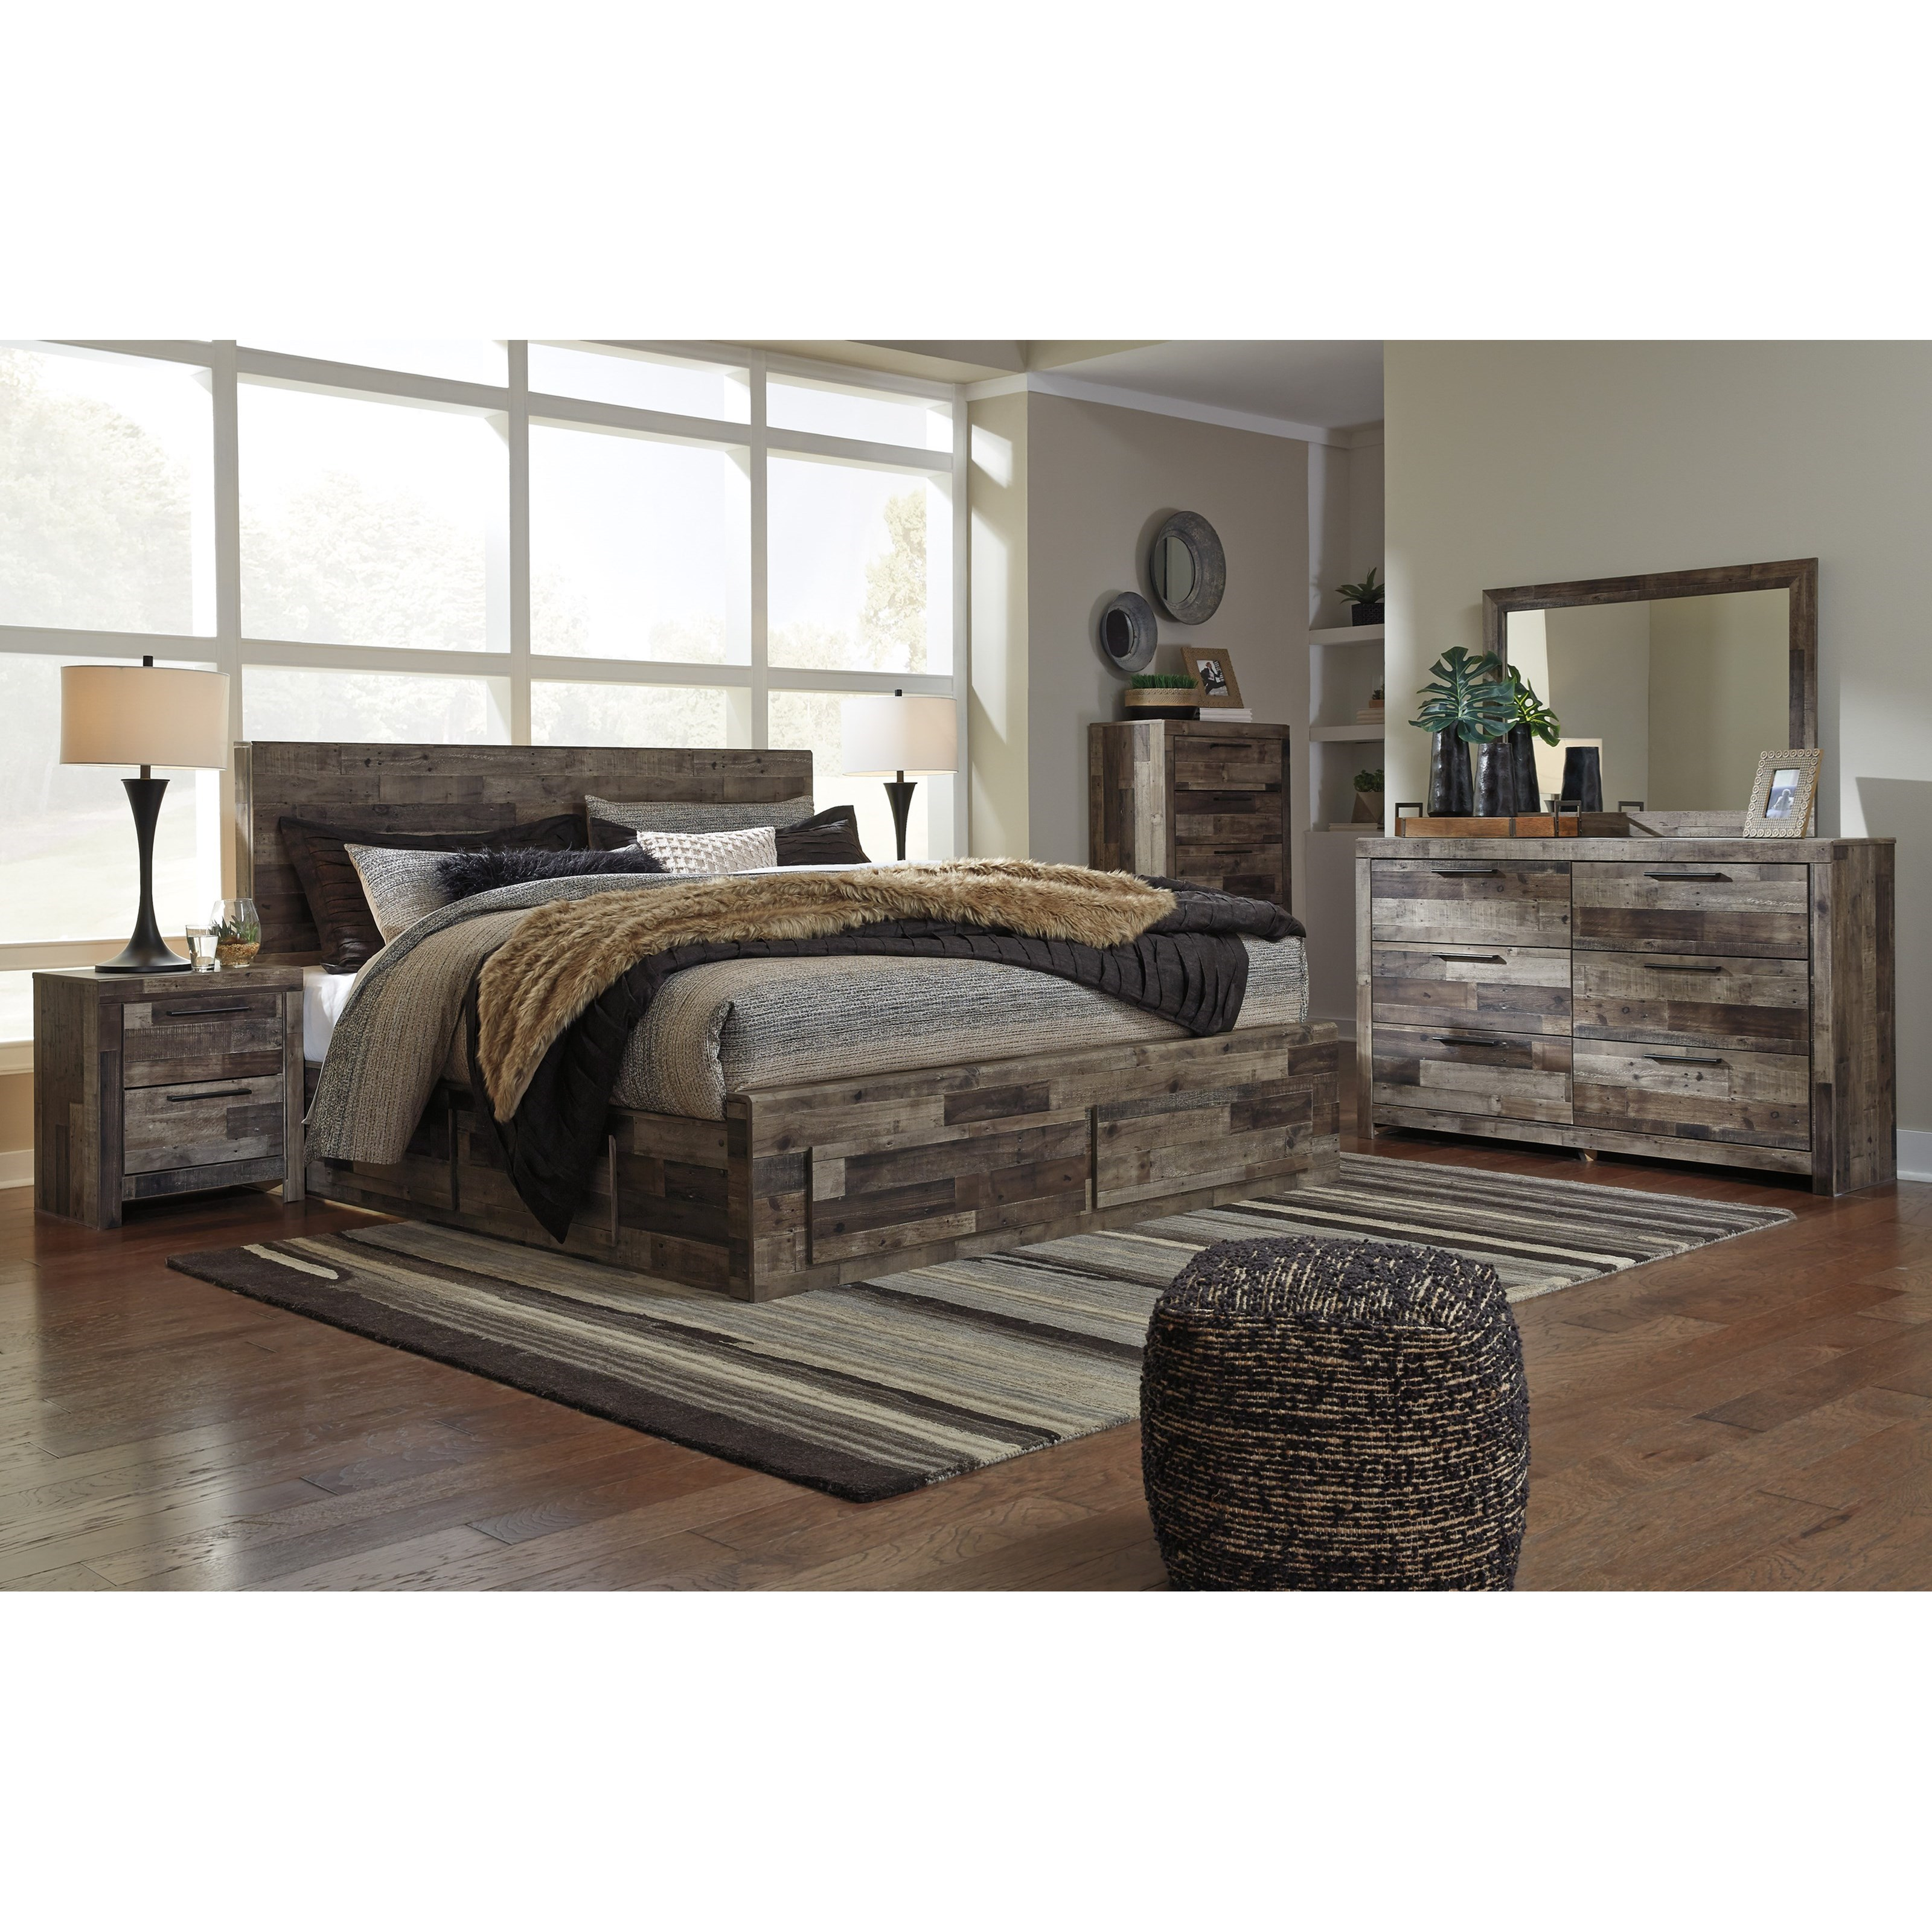 Derekson King Bedroom Group by Benchcraft at Rife's Home Furniture